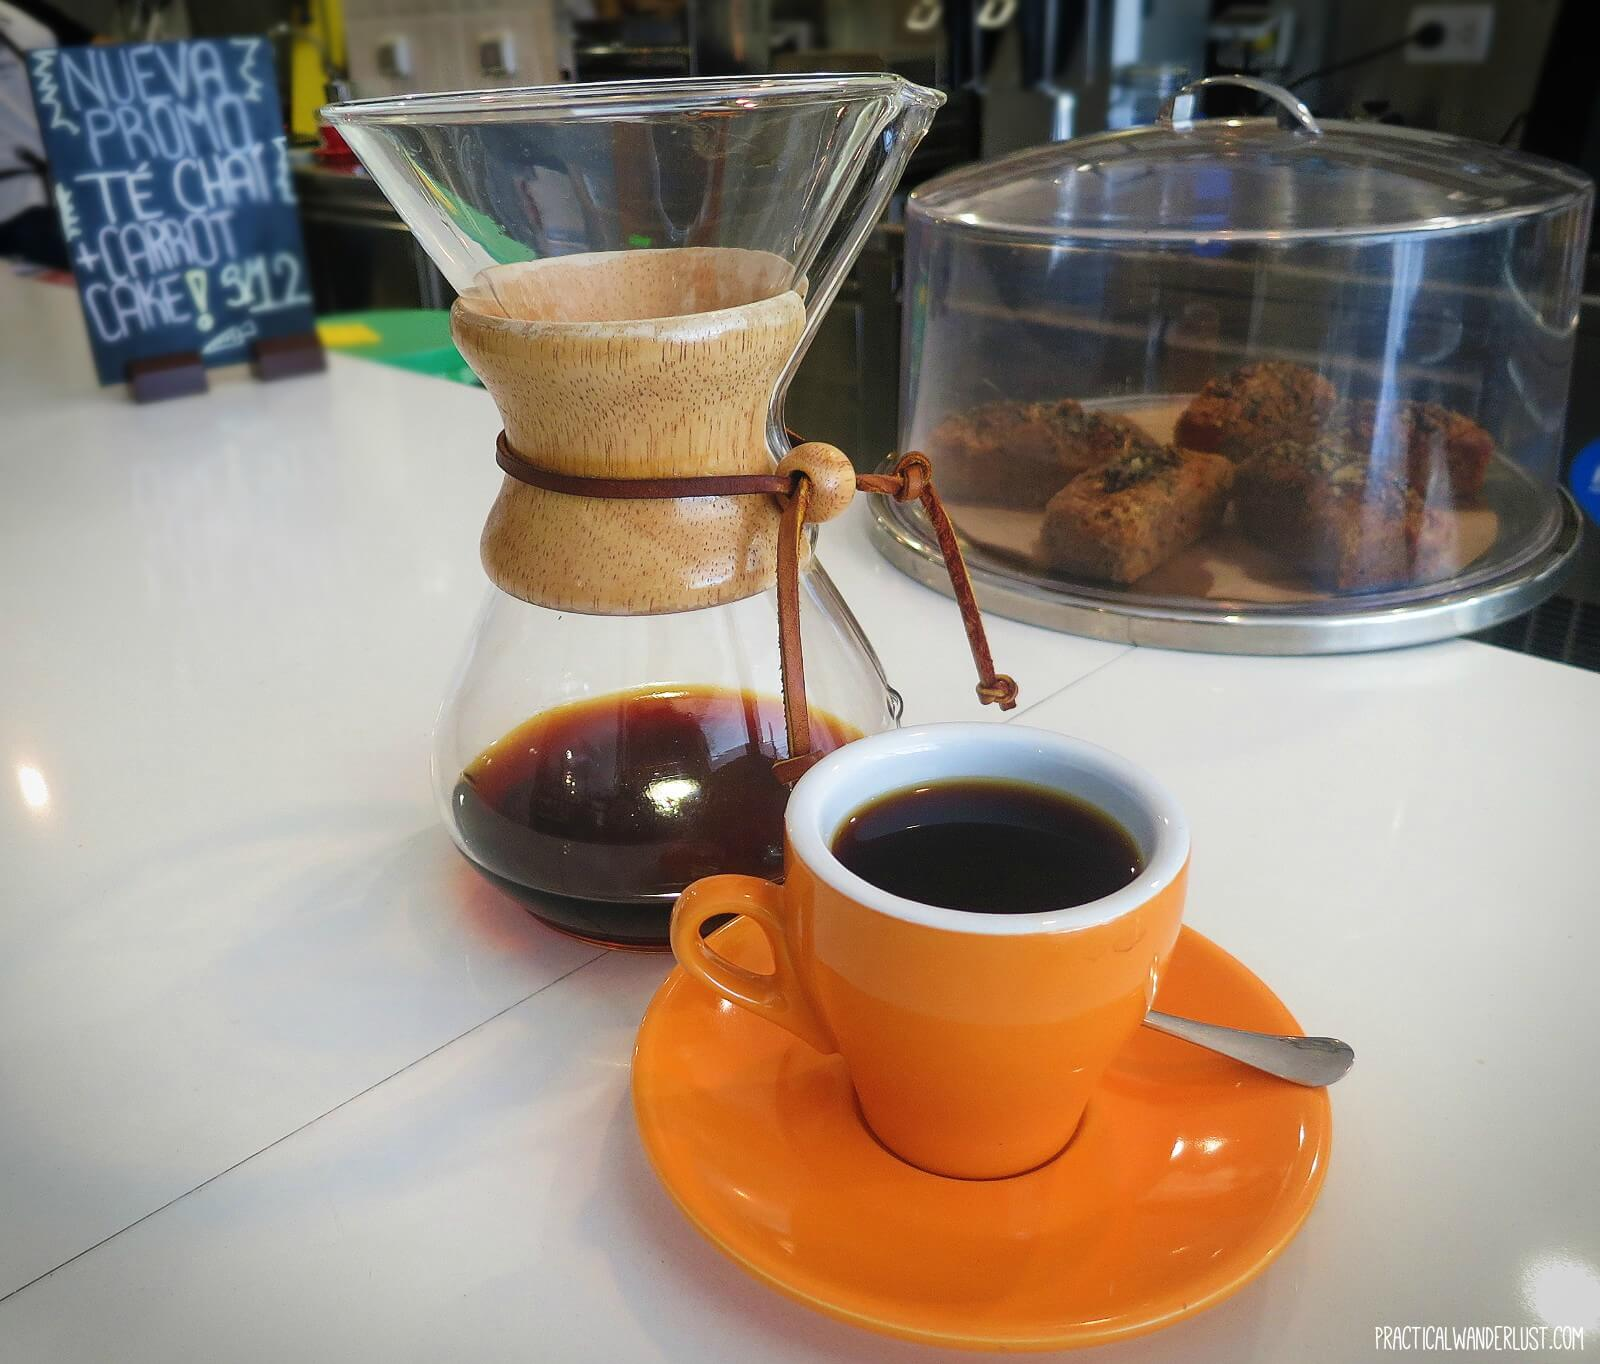 A cup of Chemex brewed coffee at True Artisan Cafe, a third wave coffee shop in Lima, Peru.